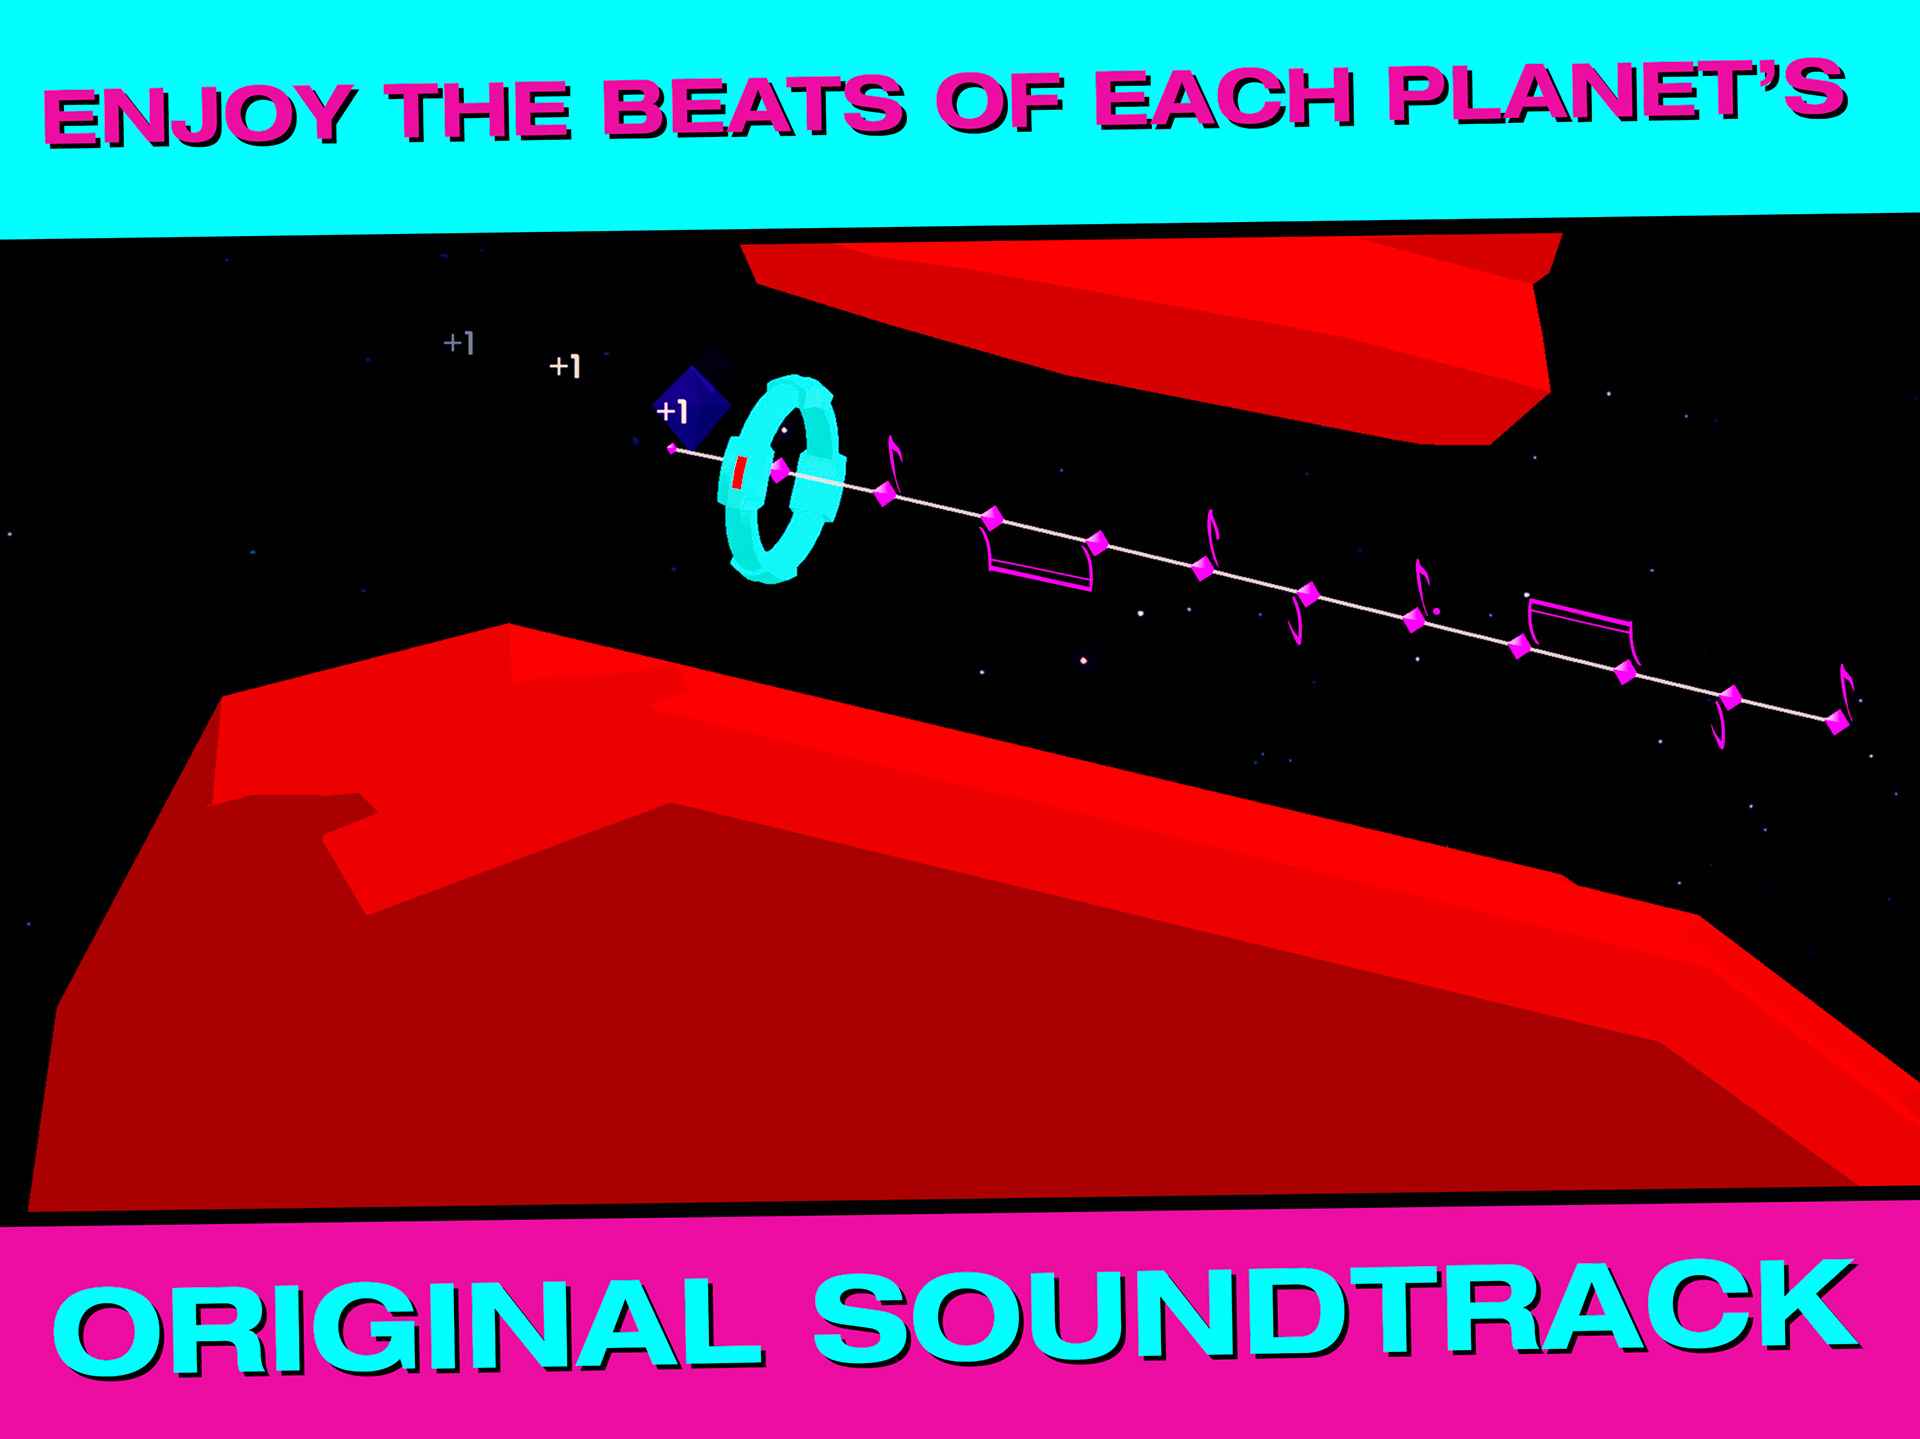 ENJOY THE BEATS OF EACH PLANET'S ORIGINAL SOUNDTRACK